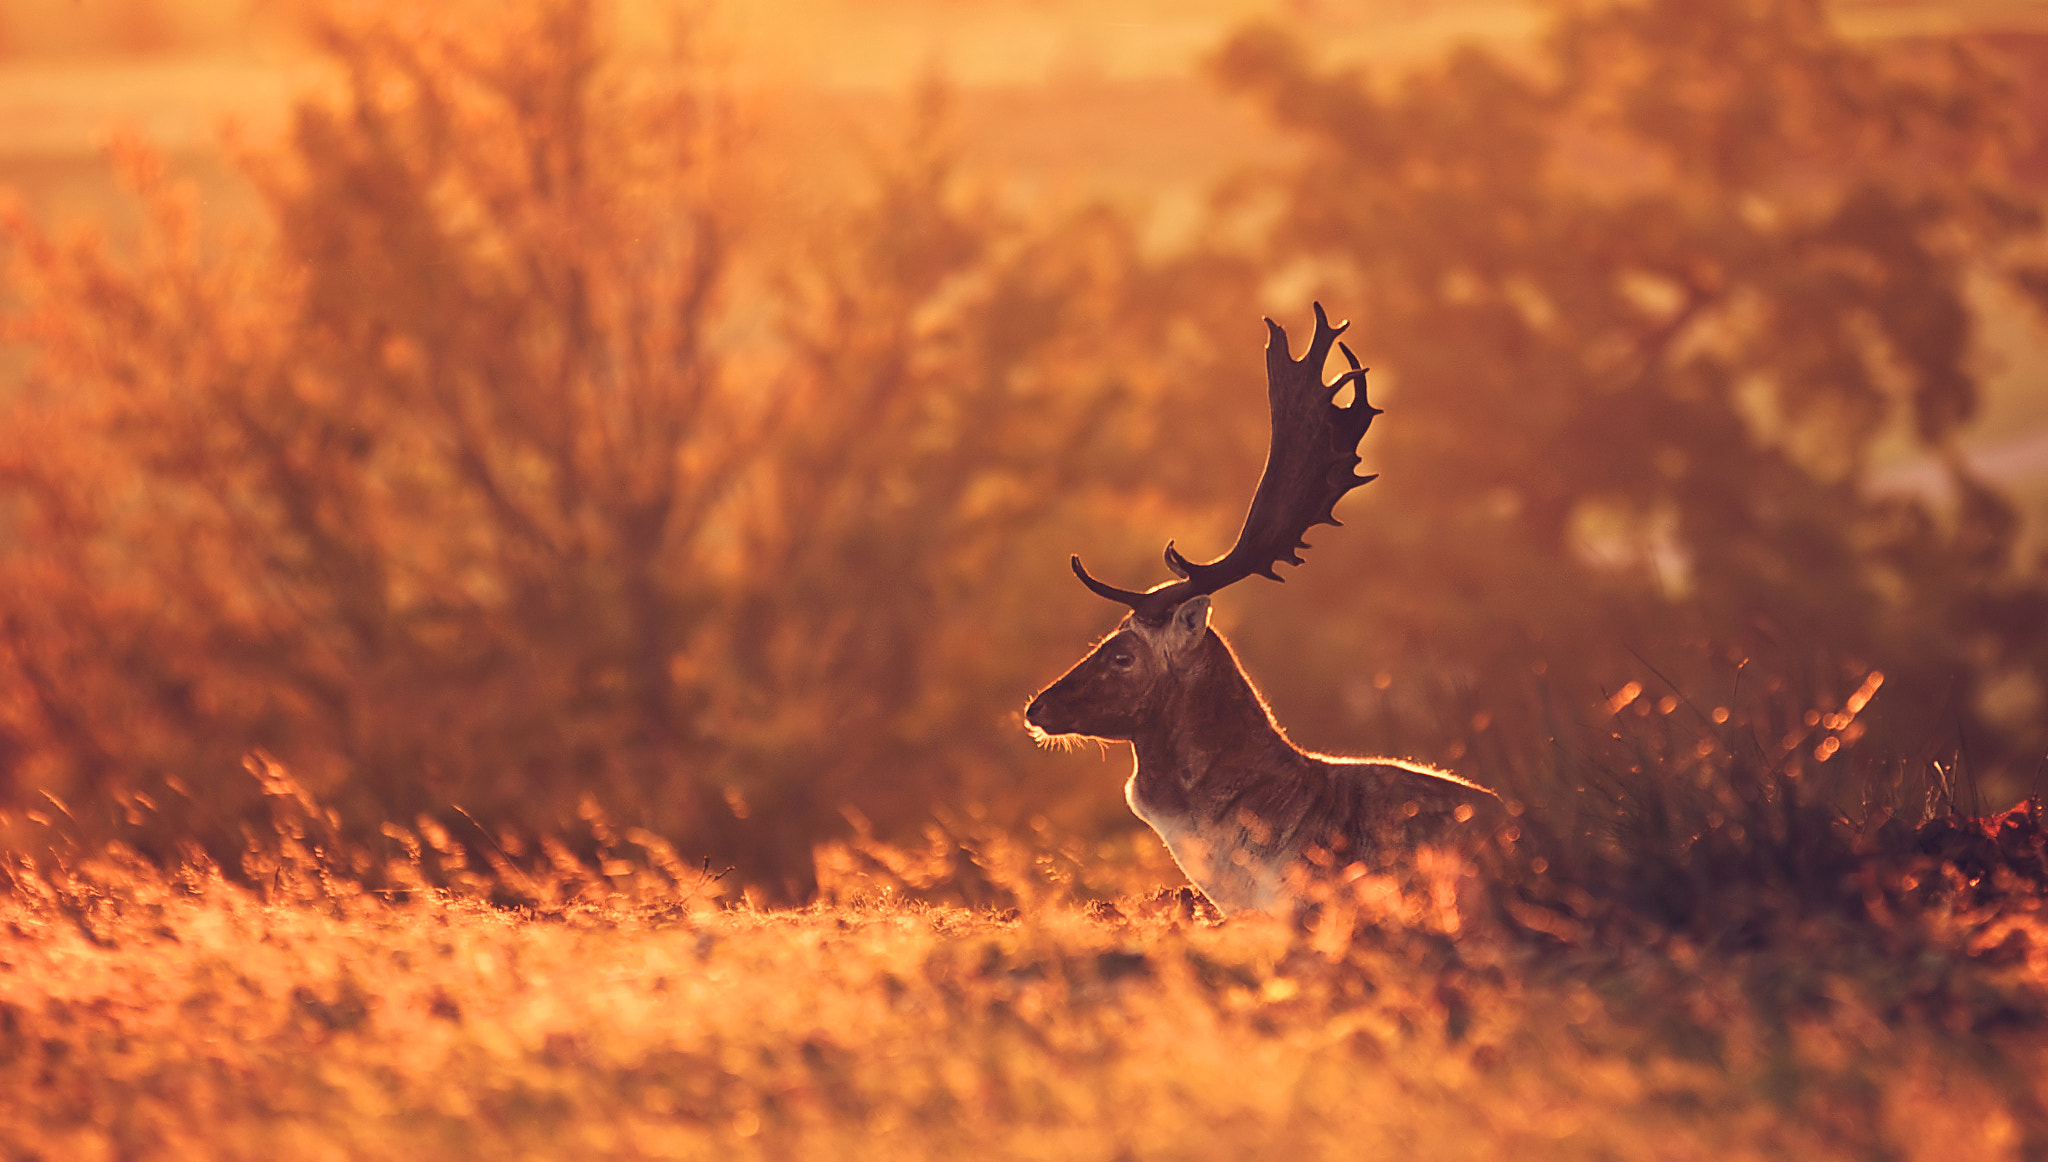 Photograph little bit of breath by Mark Bridger on 500px